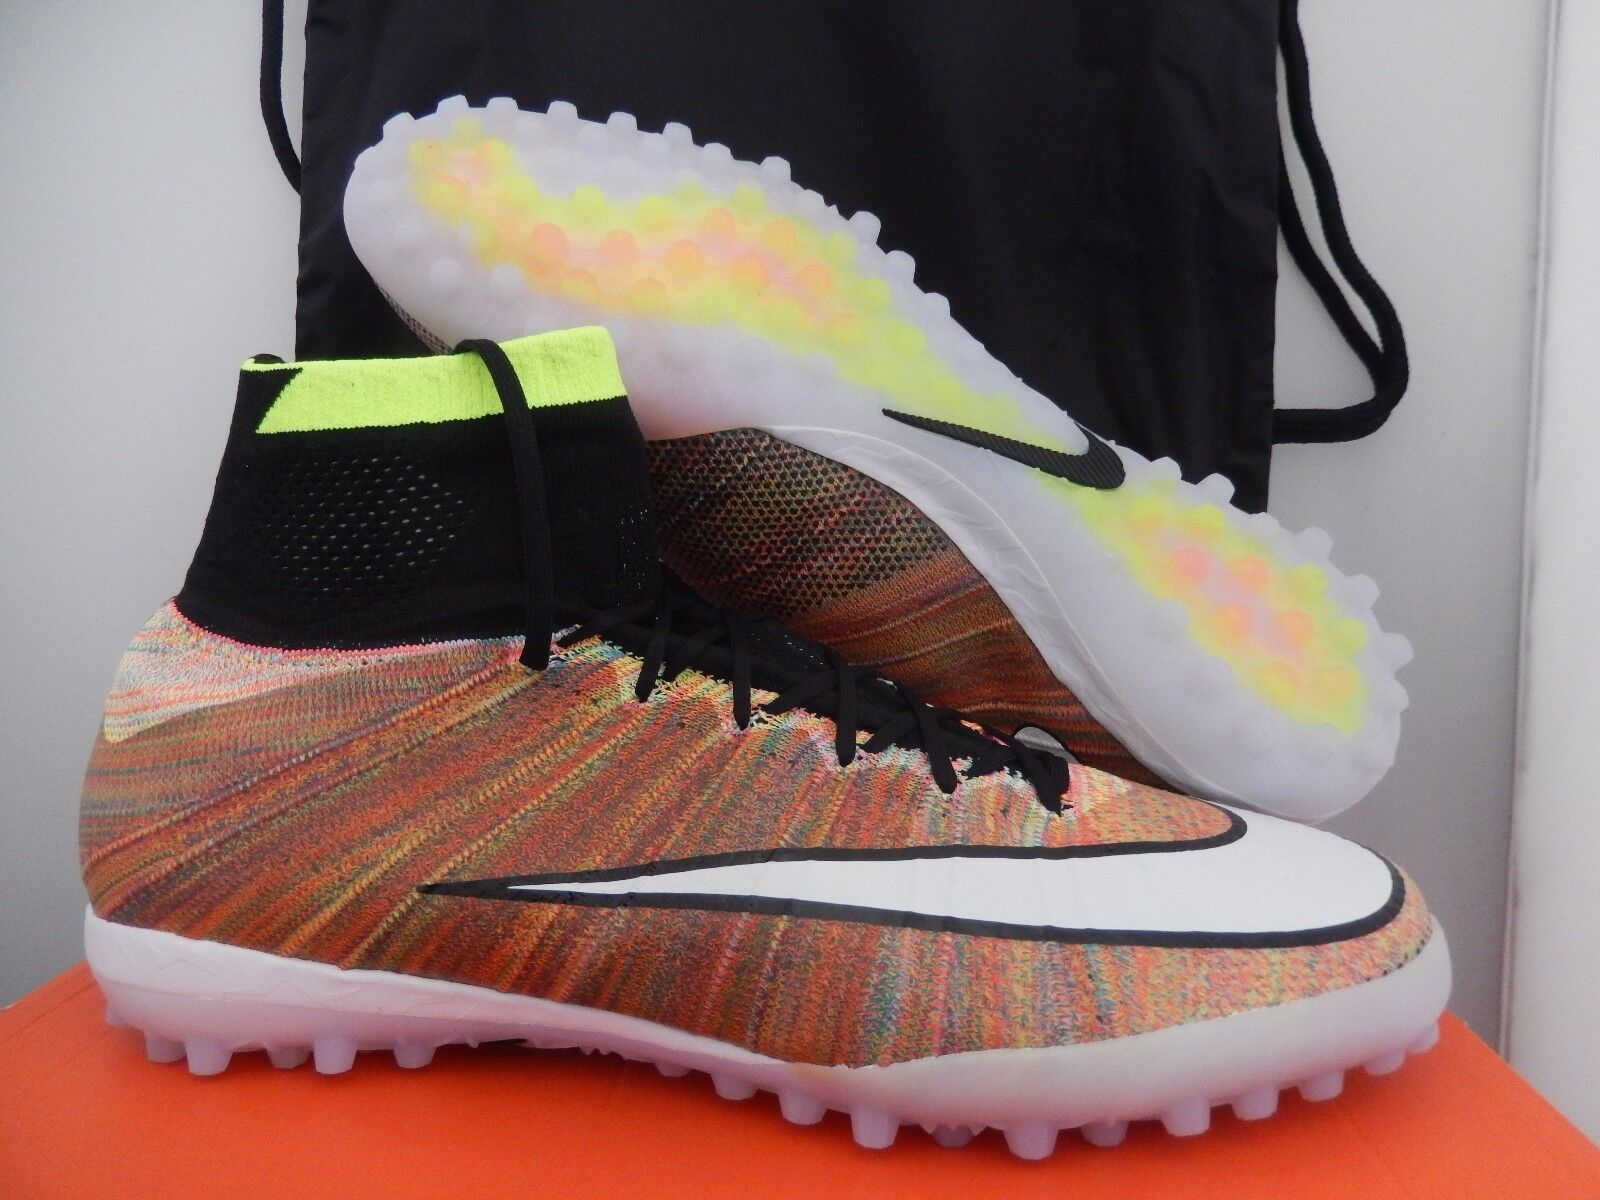 MENS NIKE MERCURIALX PROXIMO STREET TF  MULTI Color  SZ 12.5 [718777-010]